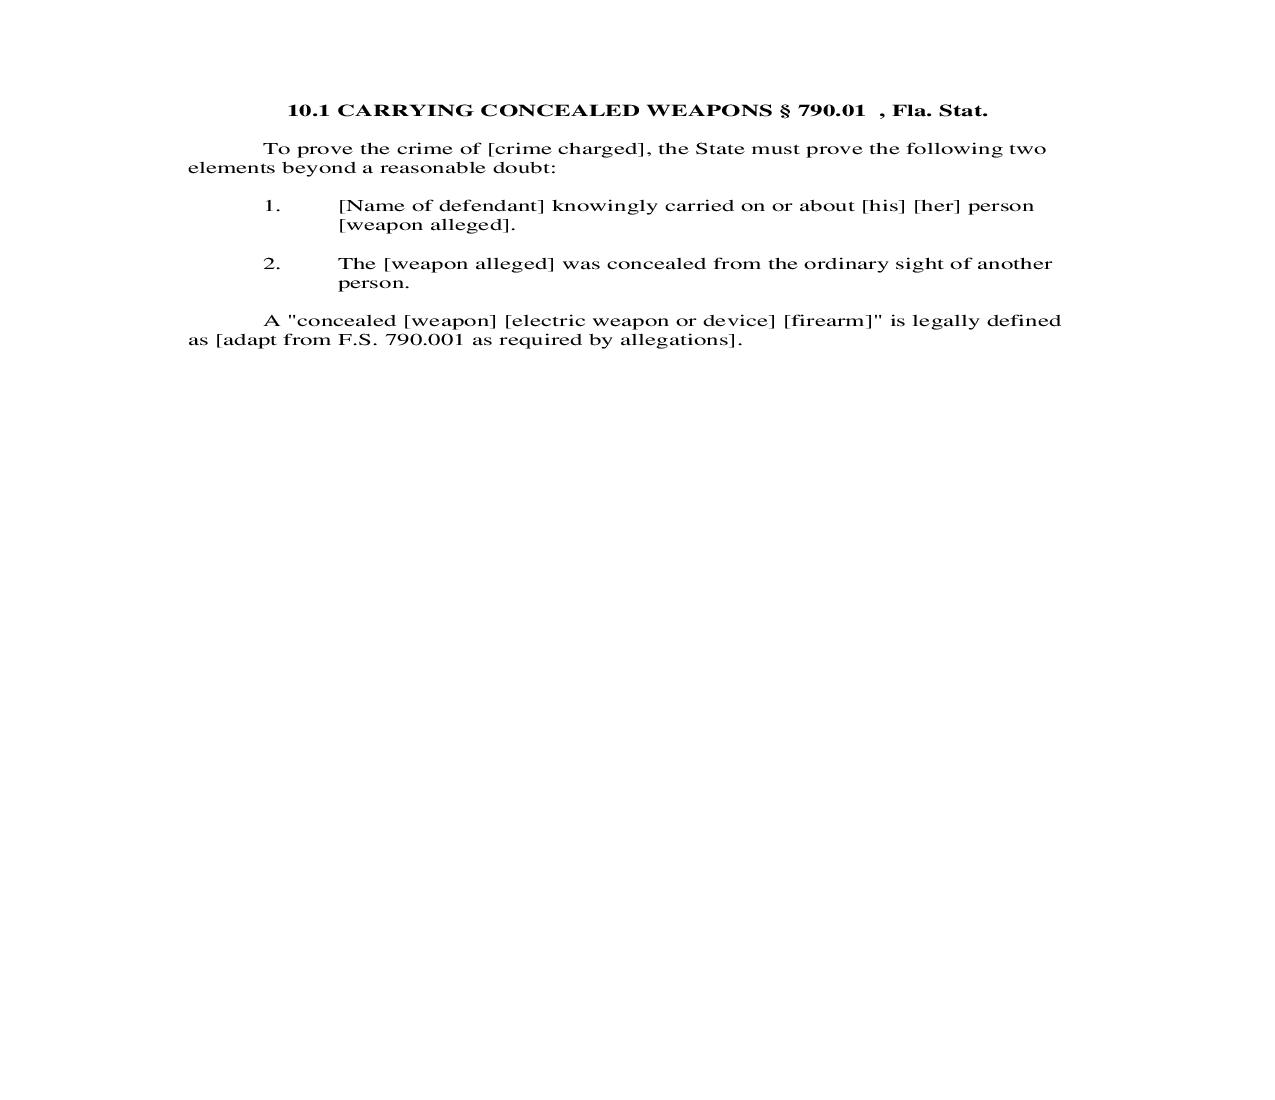 10.1. Carrying Concealed Weapons | Pdf Doc Docx | Florida_JI